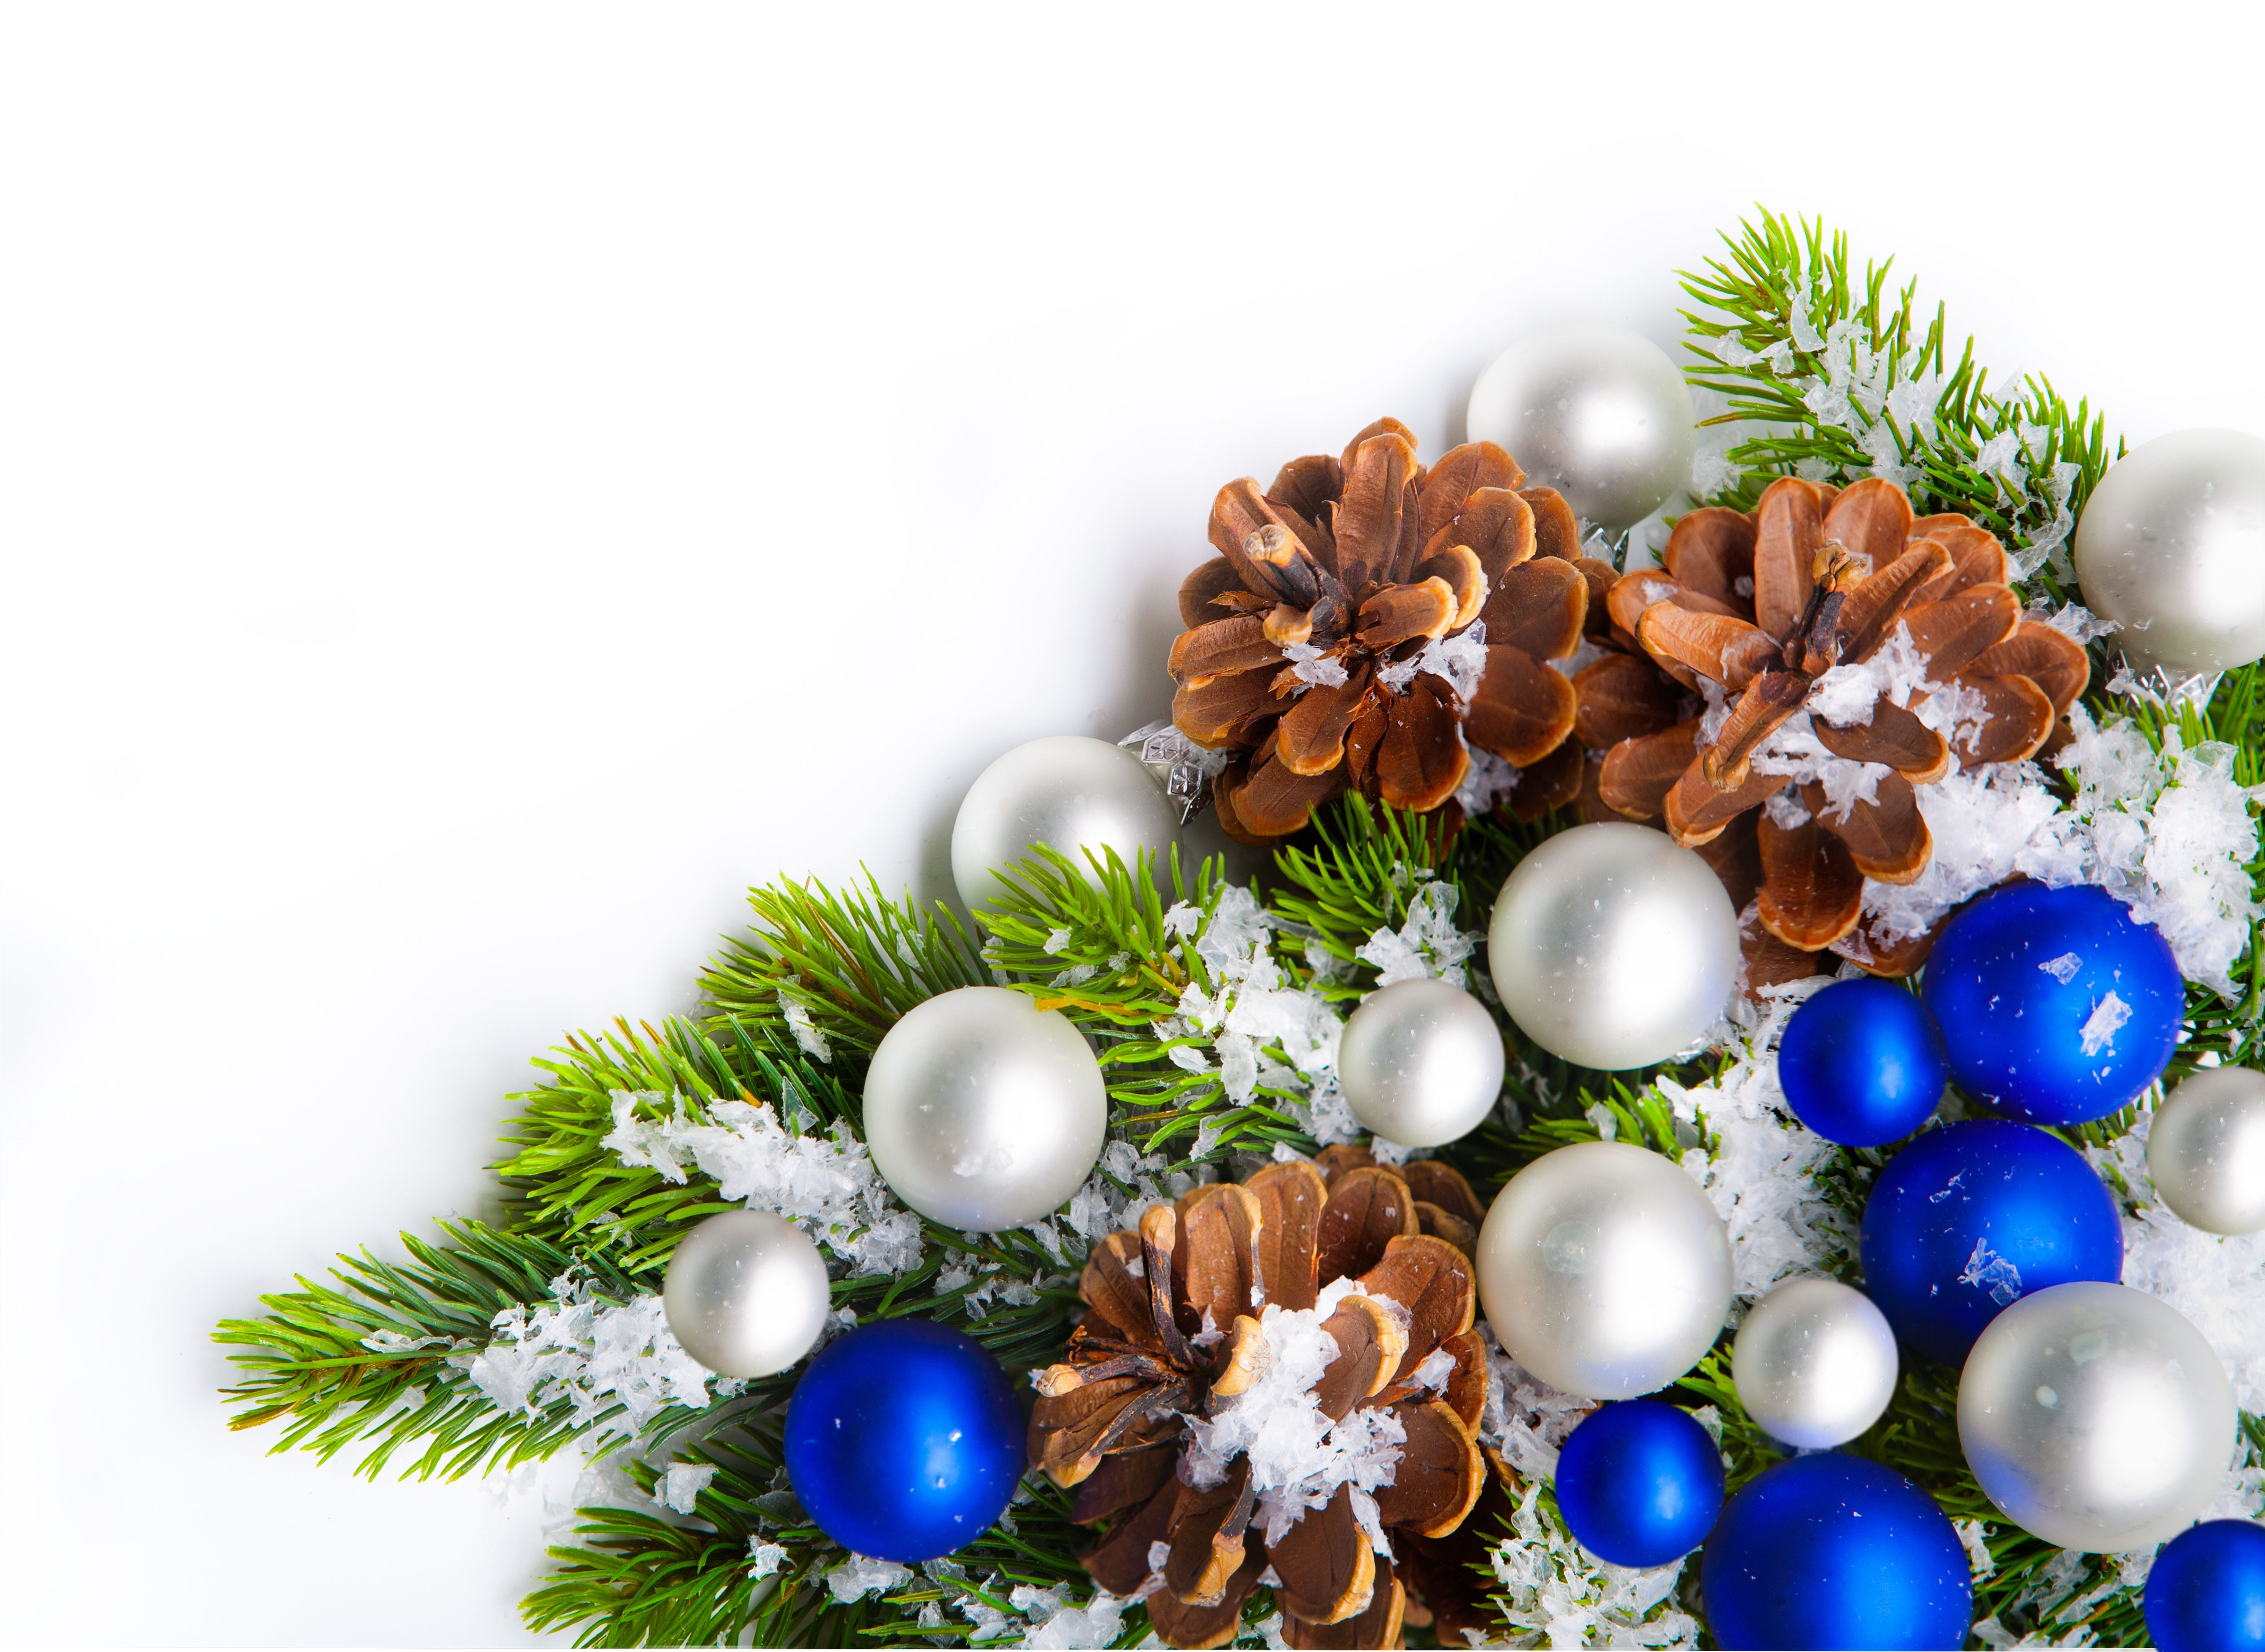 Christmas 8k Ultra HD Wallpaper and Background | 8022x5852 ... Christmas Ornaments Iphone Wallpaper